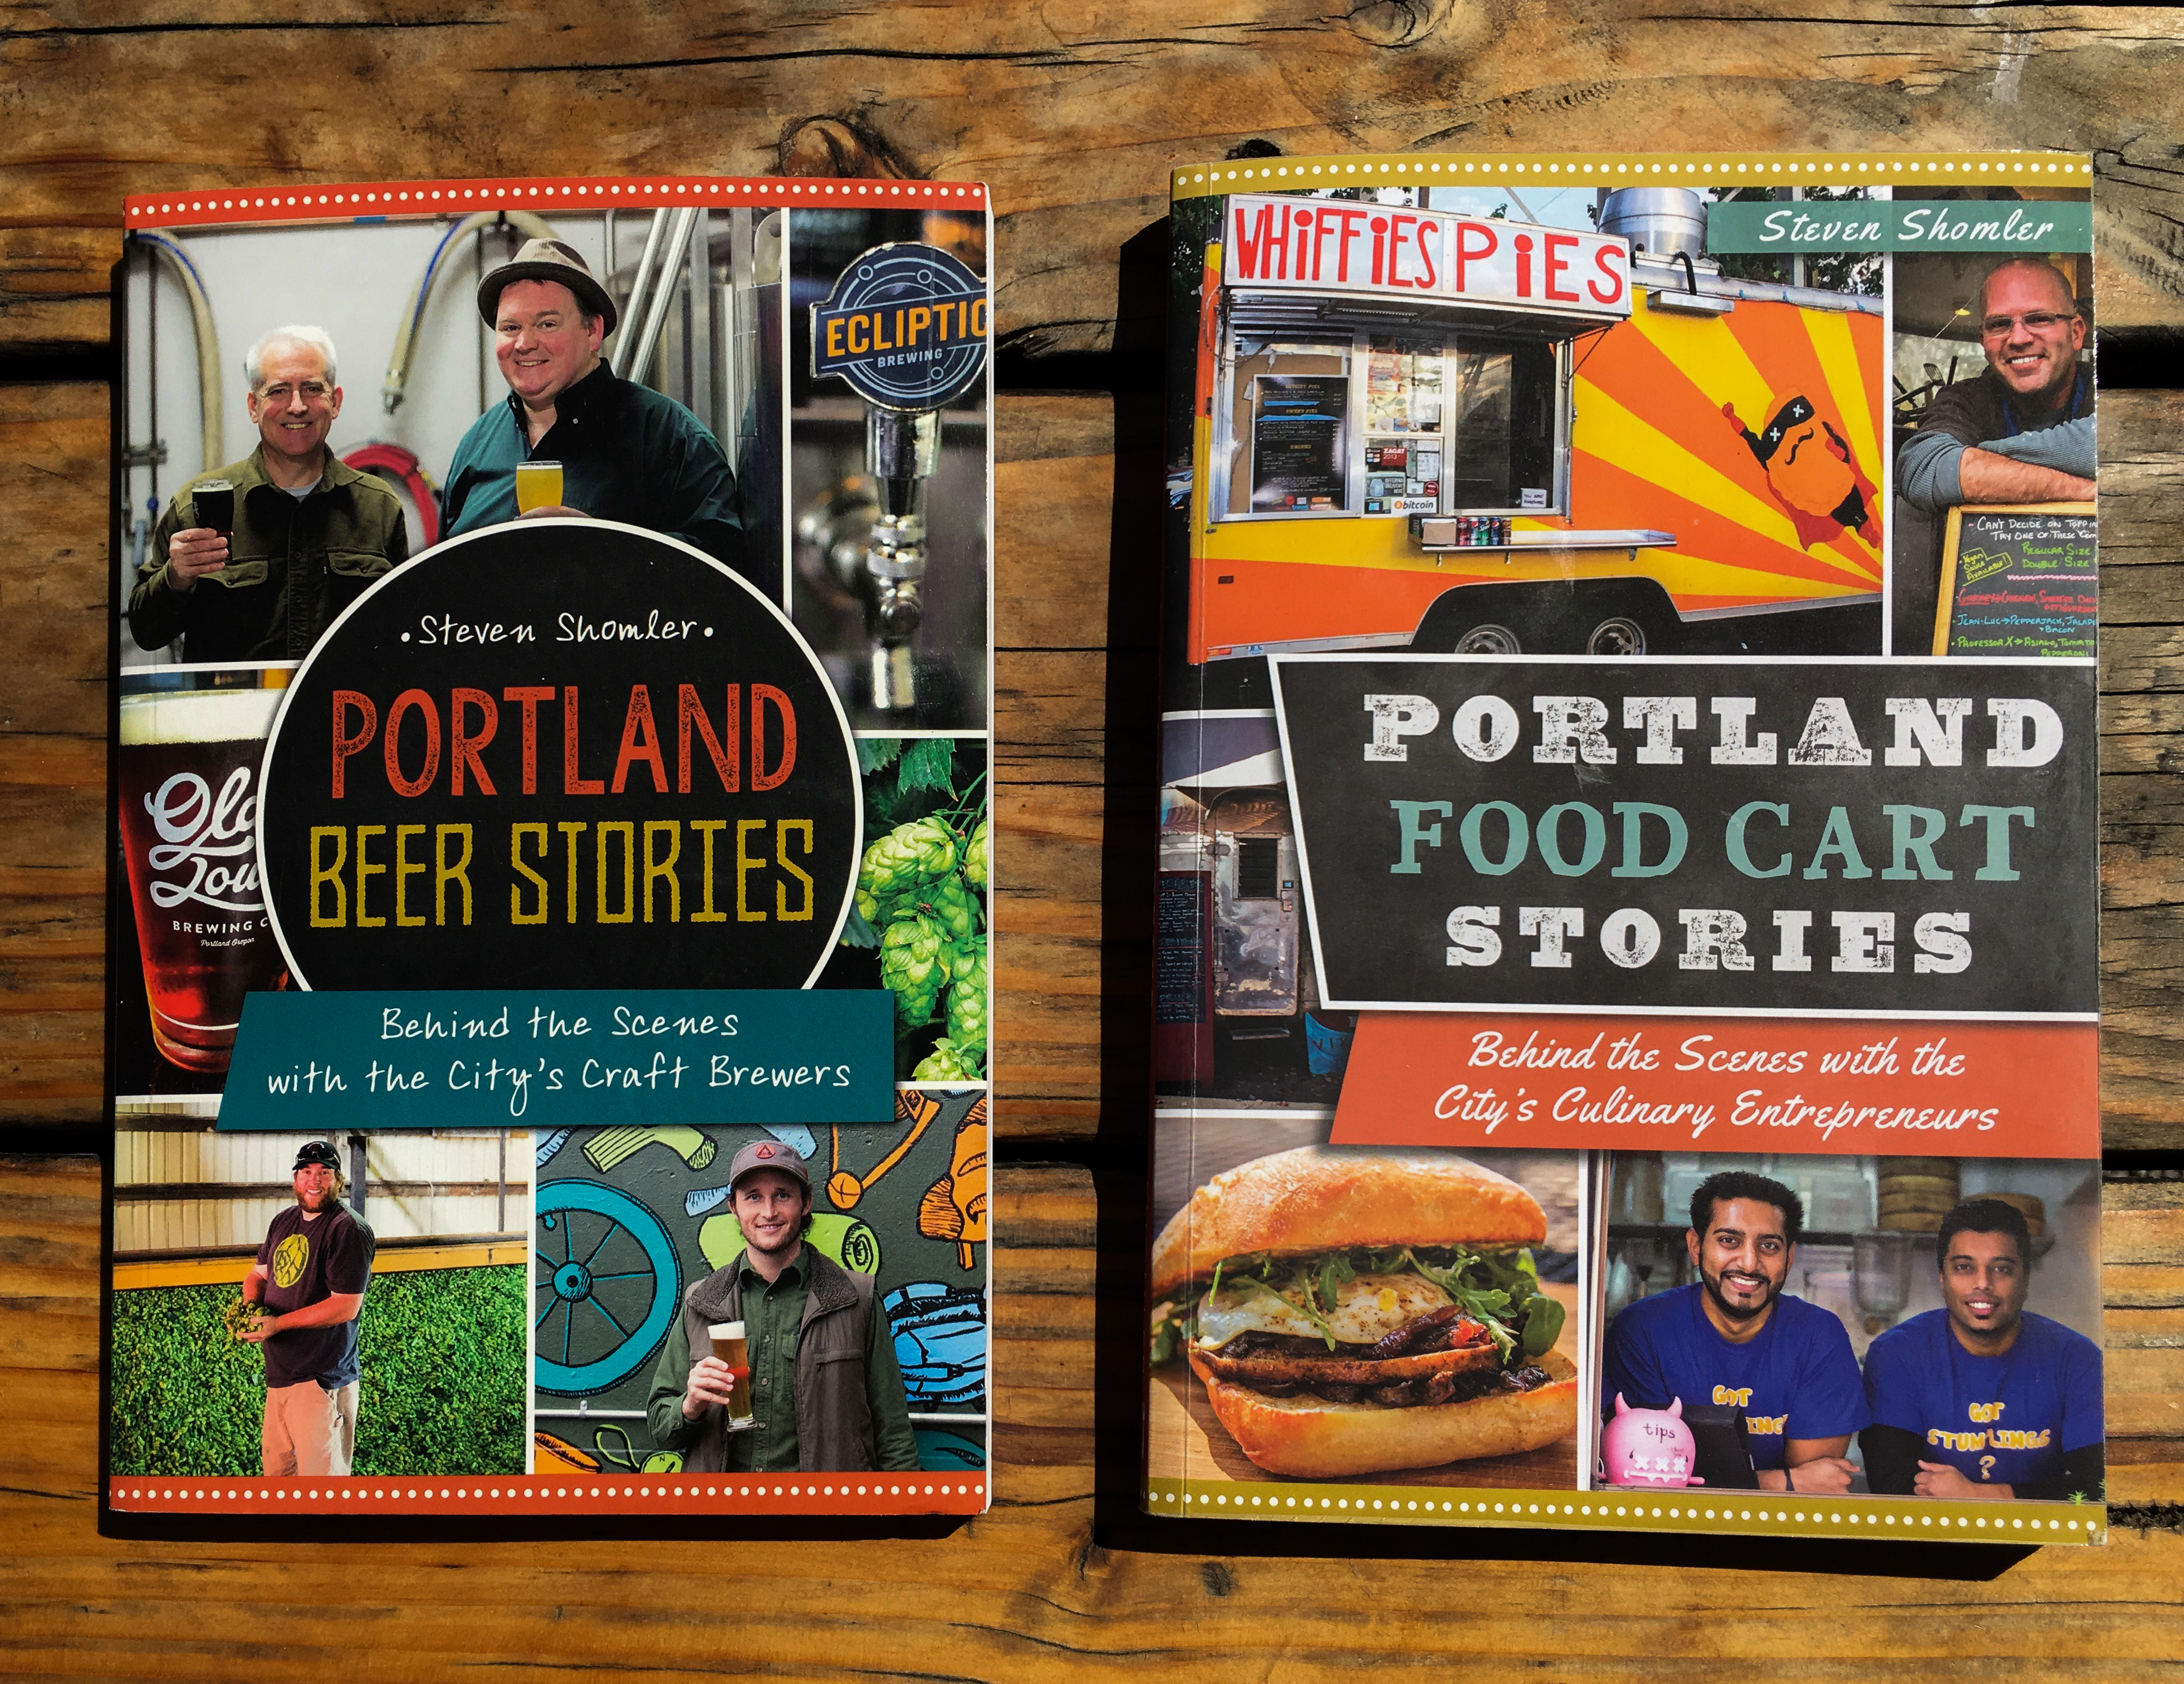 Steven Shomler More Good Day Oregon Food Cart Stories Aug 2016-106